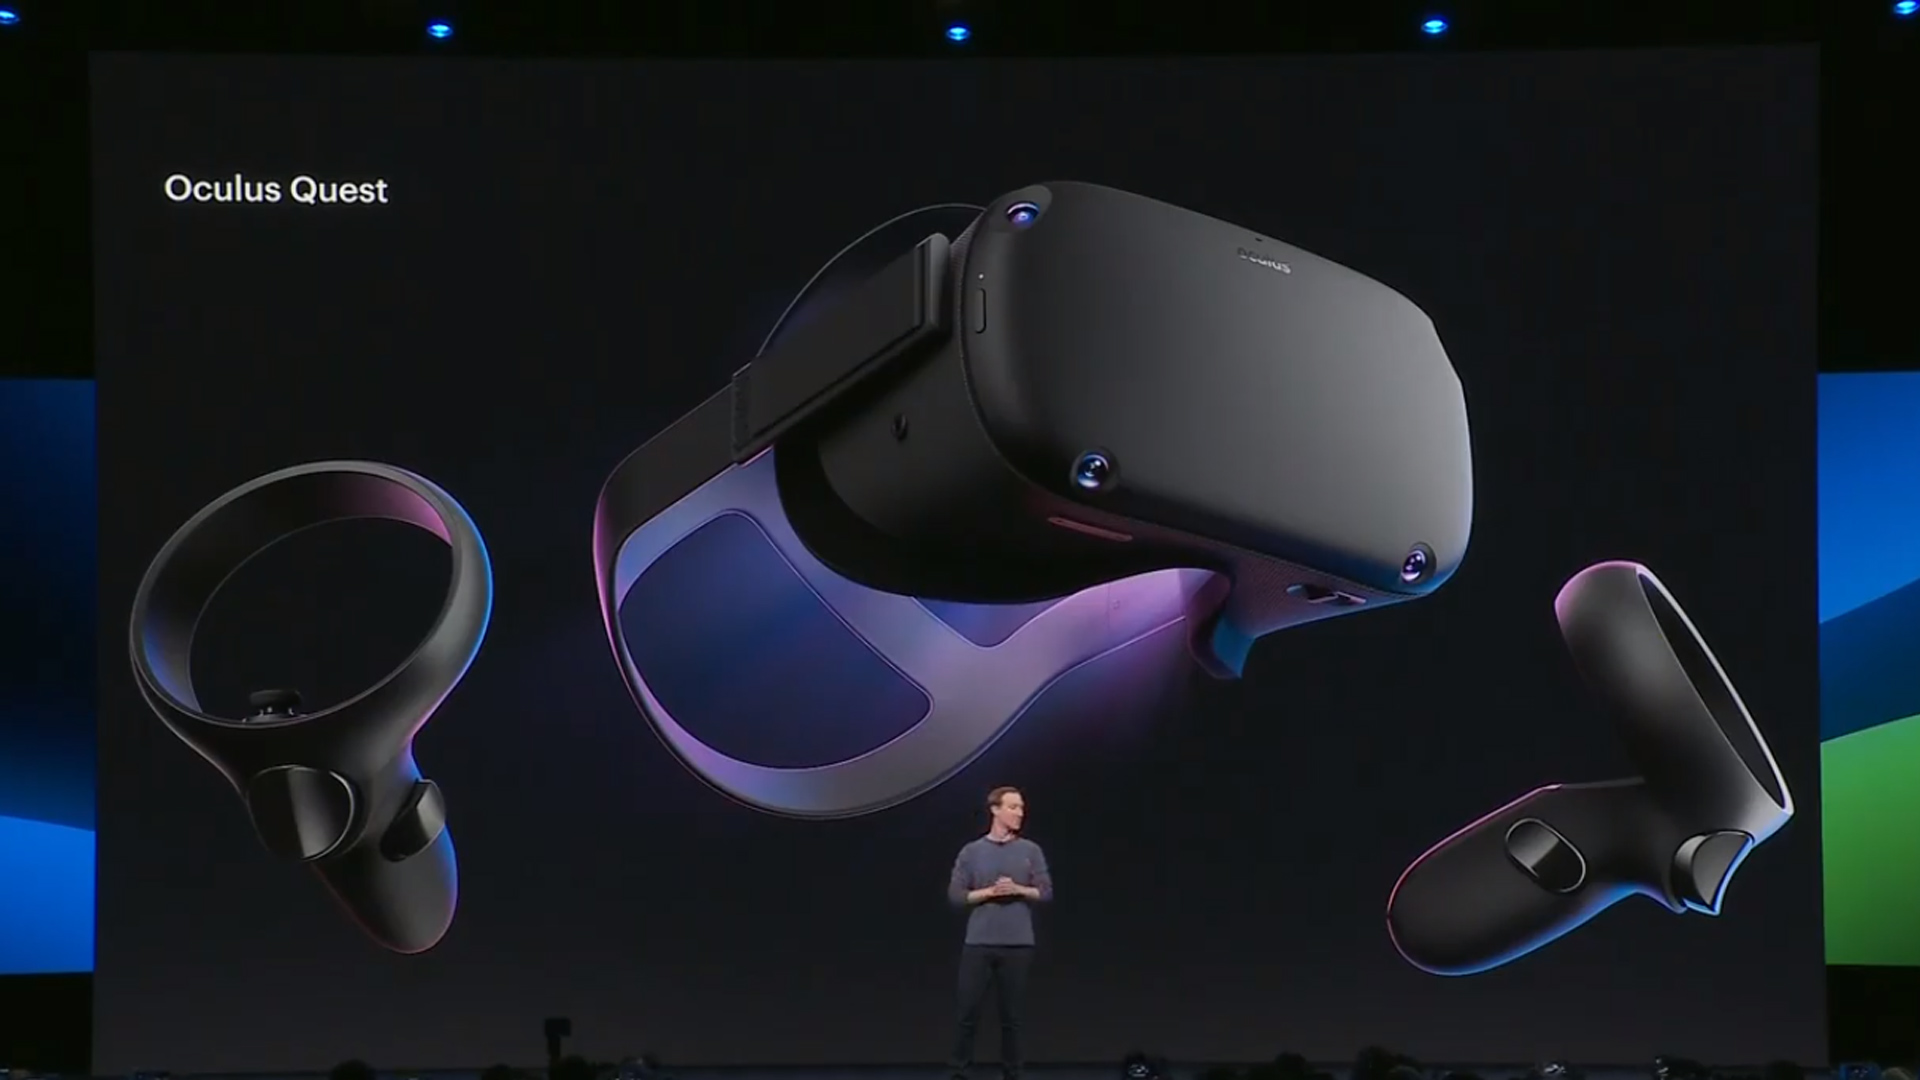 F8 2019: Facebook is Giving Away a Free Oculus Quest to